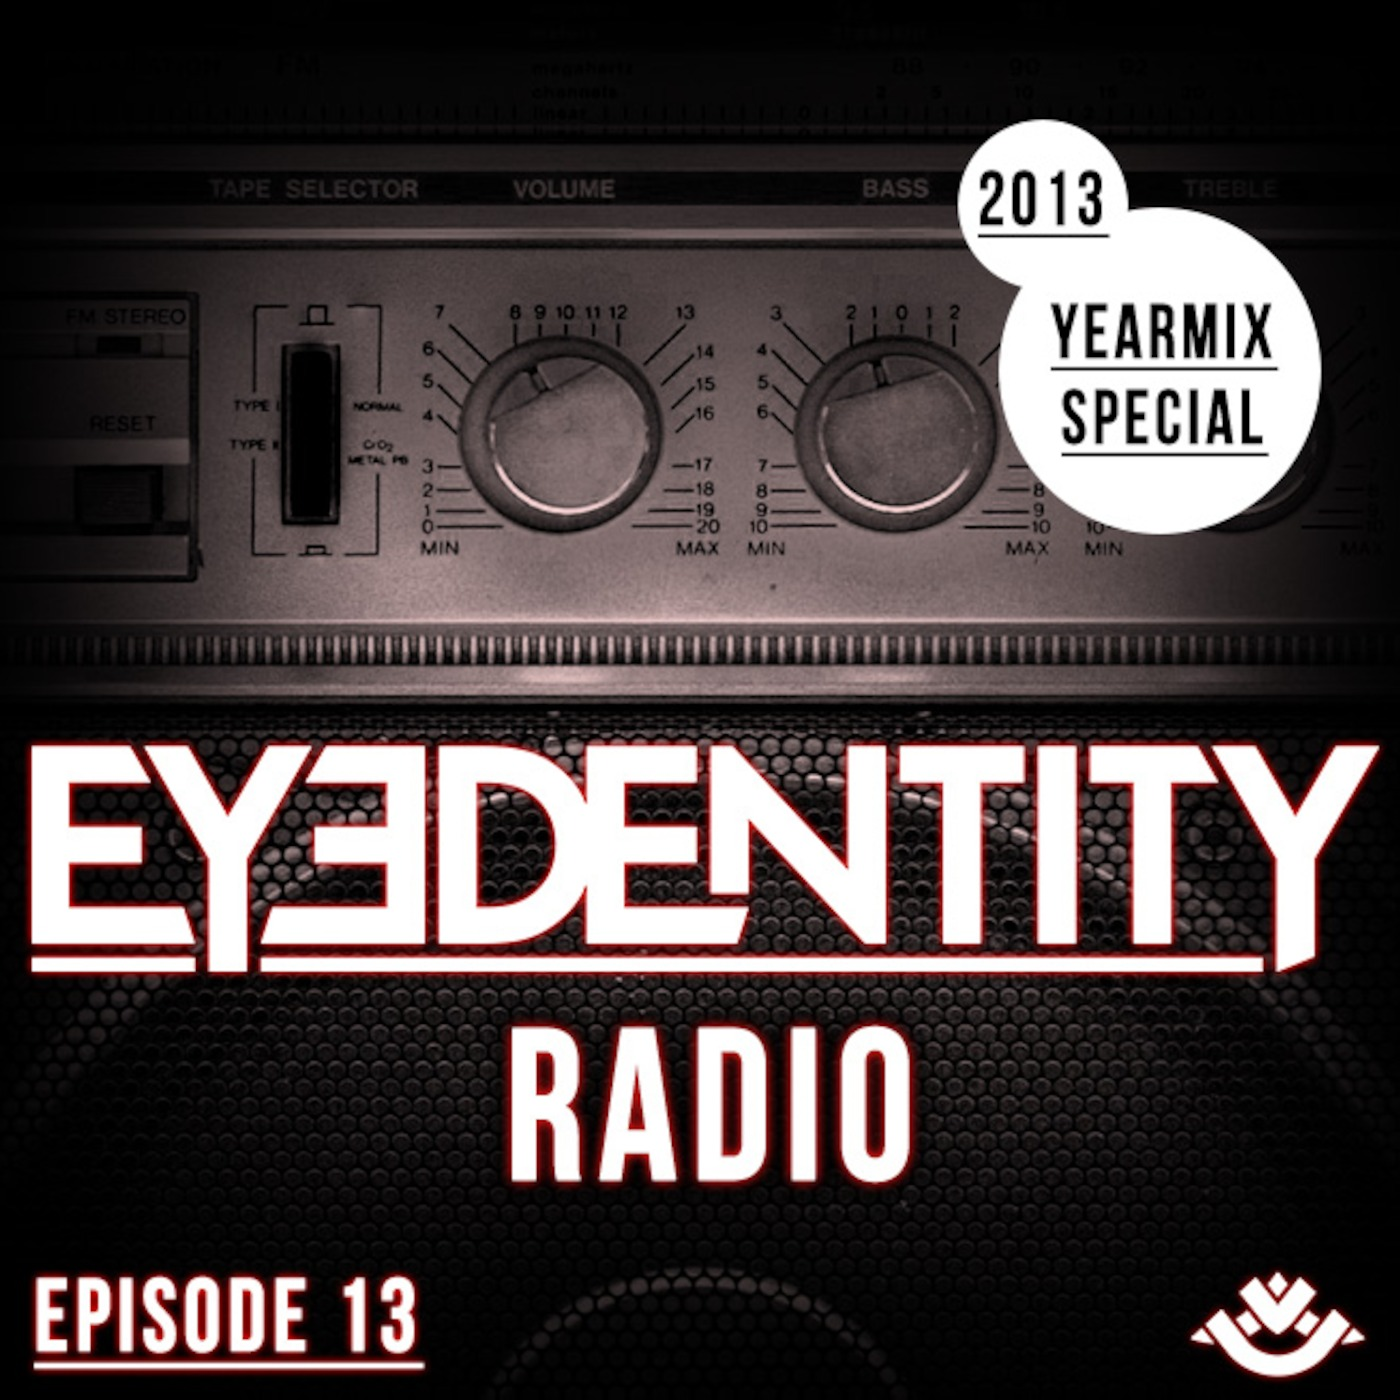 Eyedentity Radio